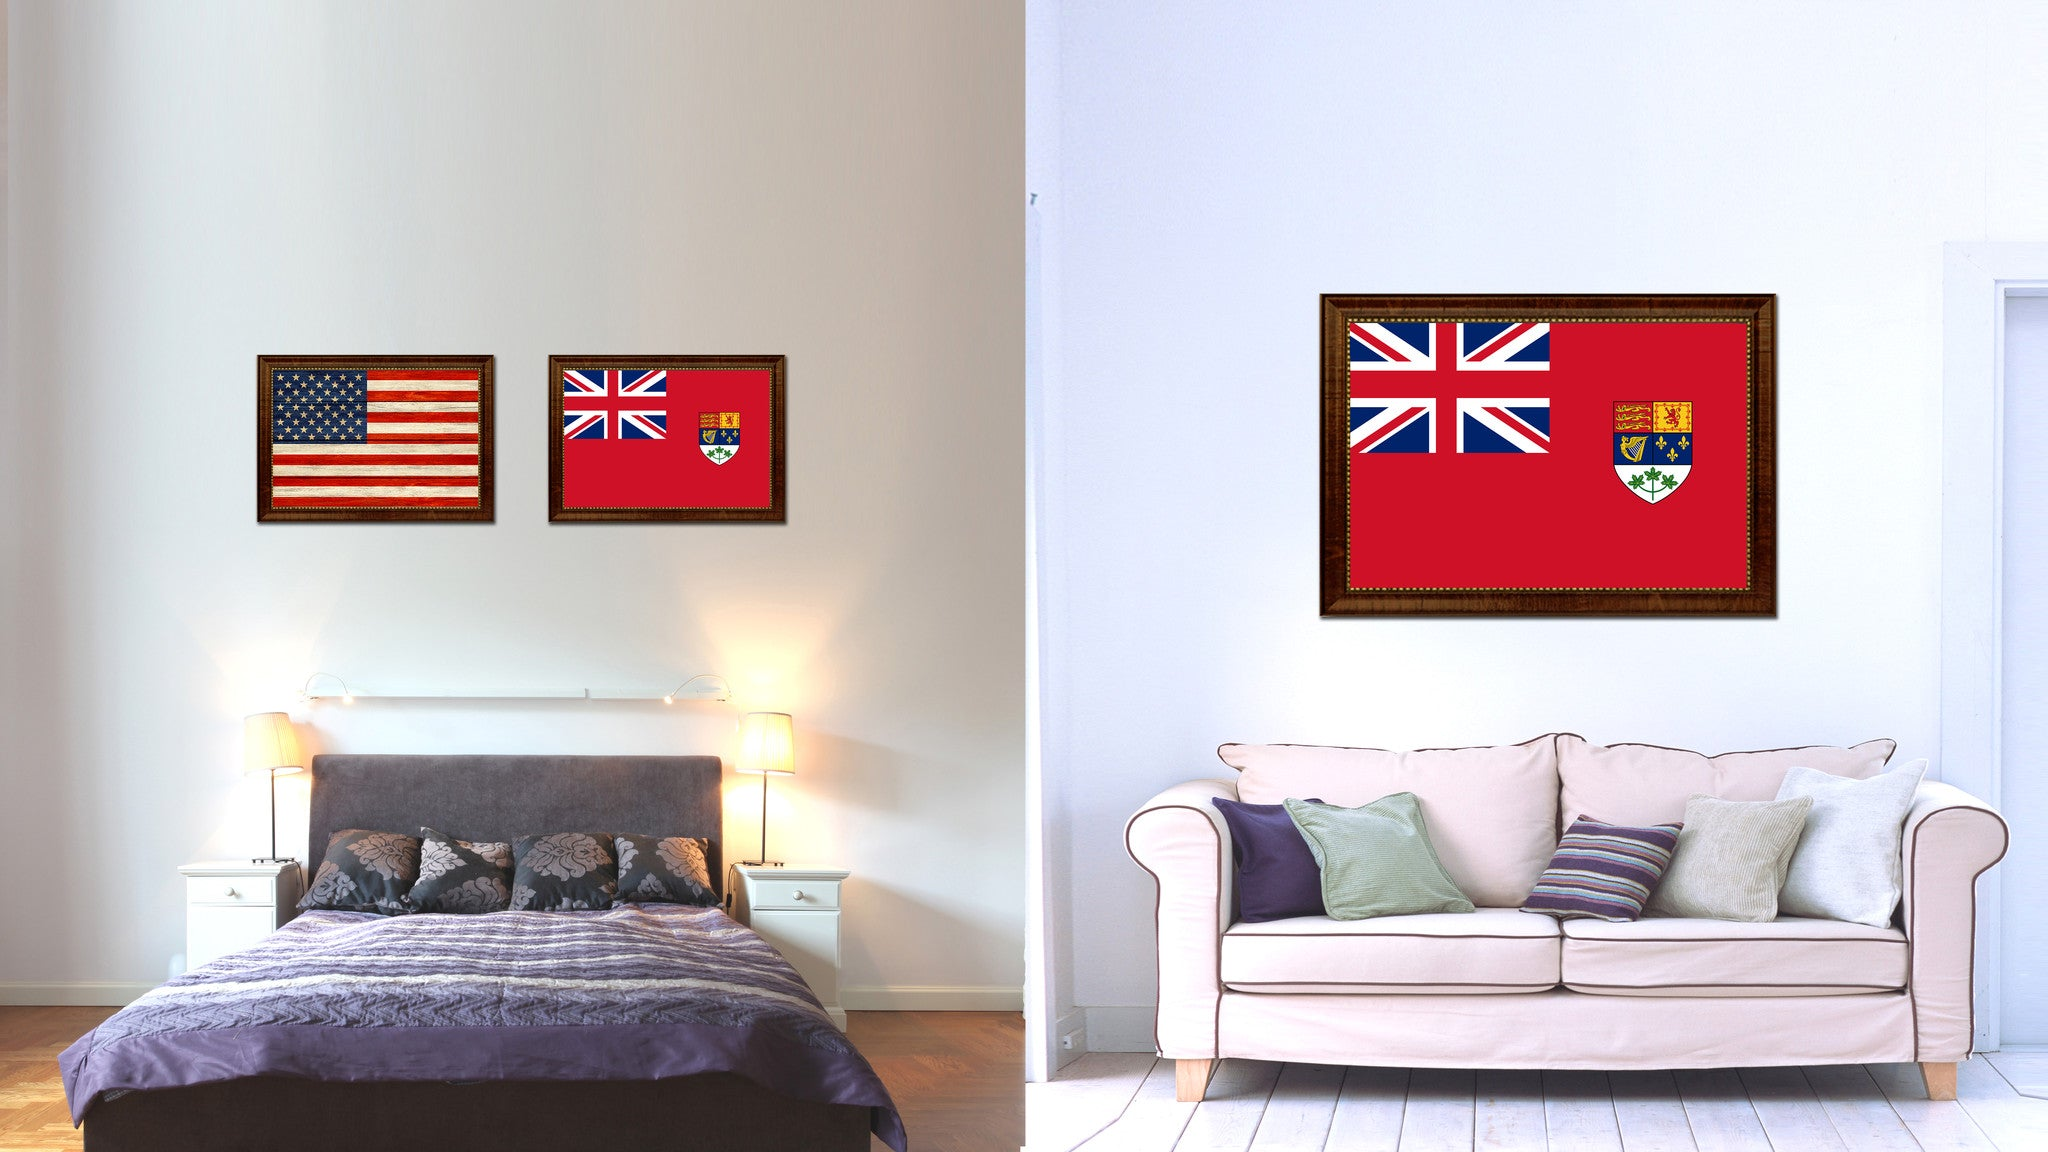 Canadian Red Ensign City Canada Country Flag Canvas Print Brown Picture Frame